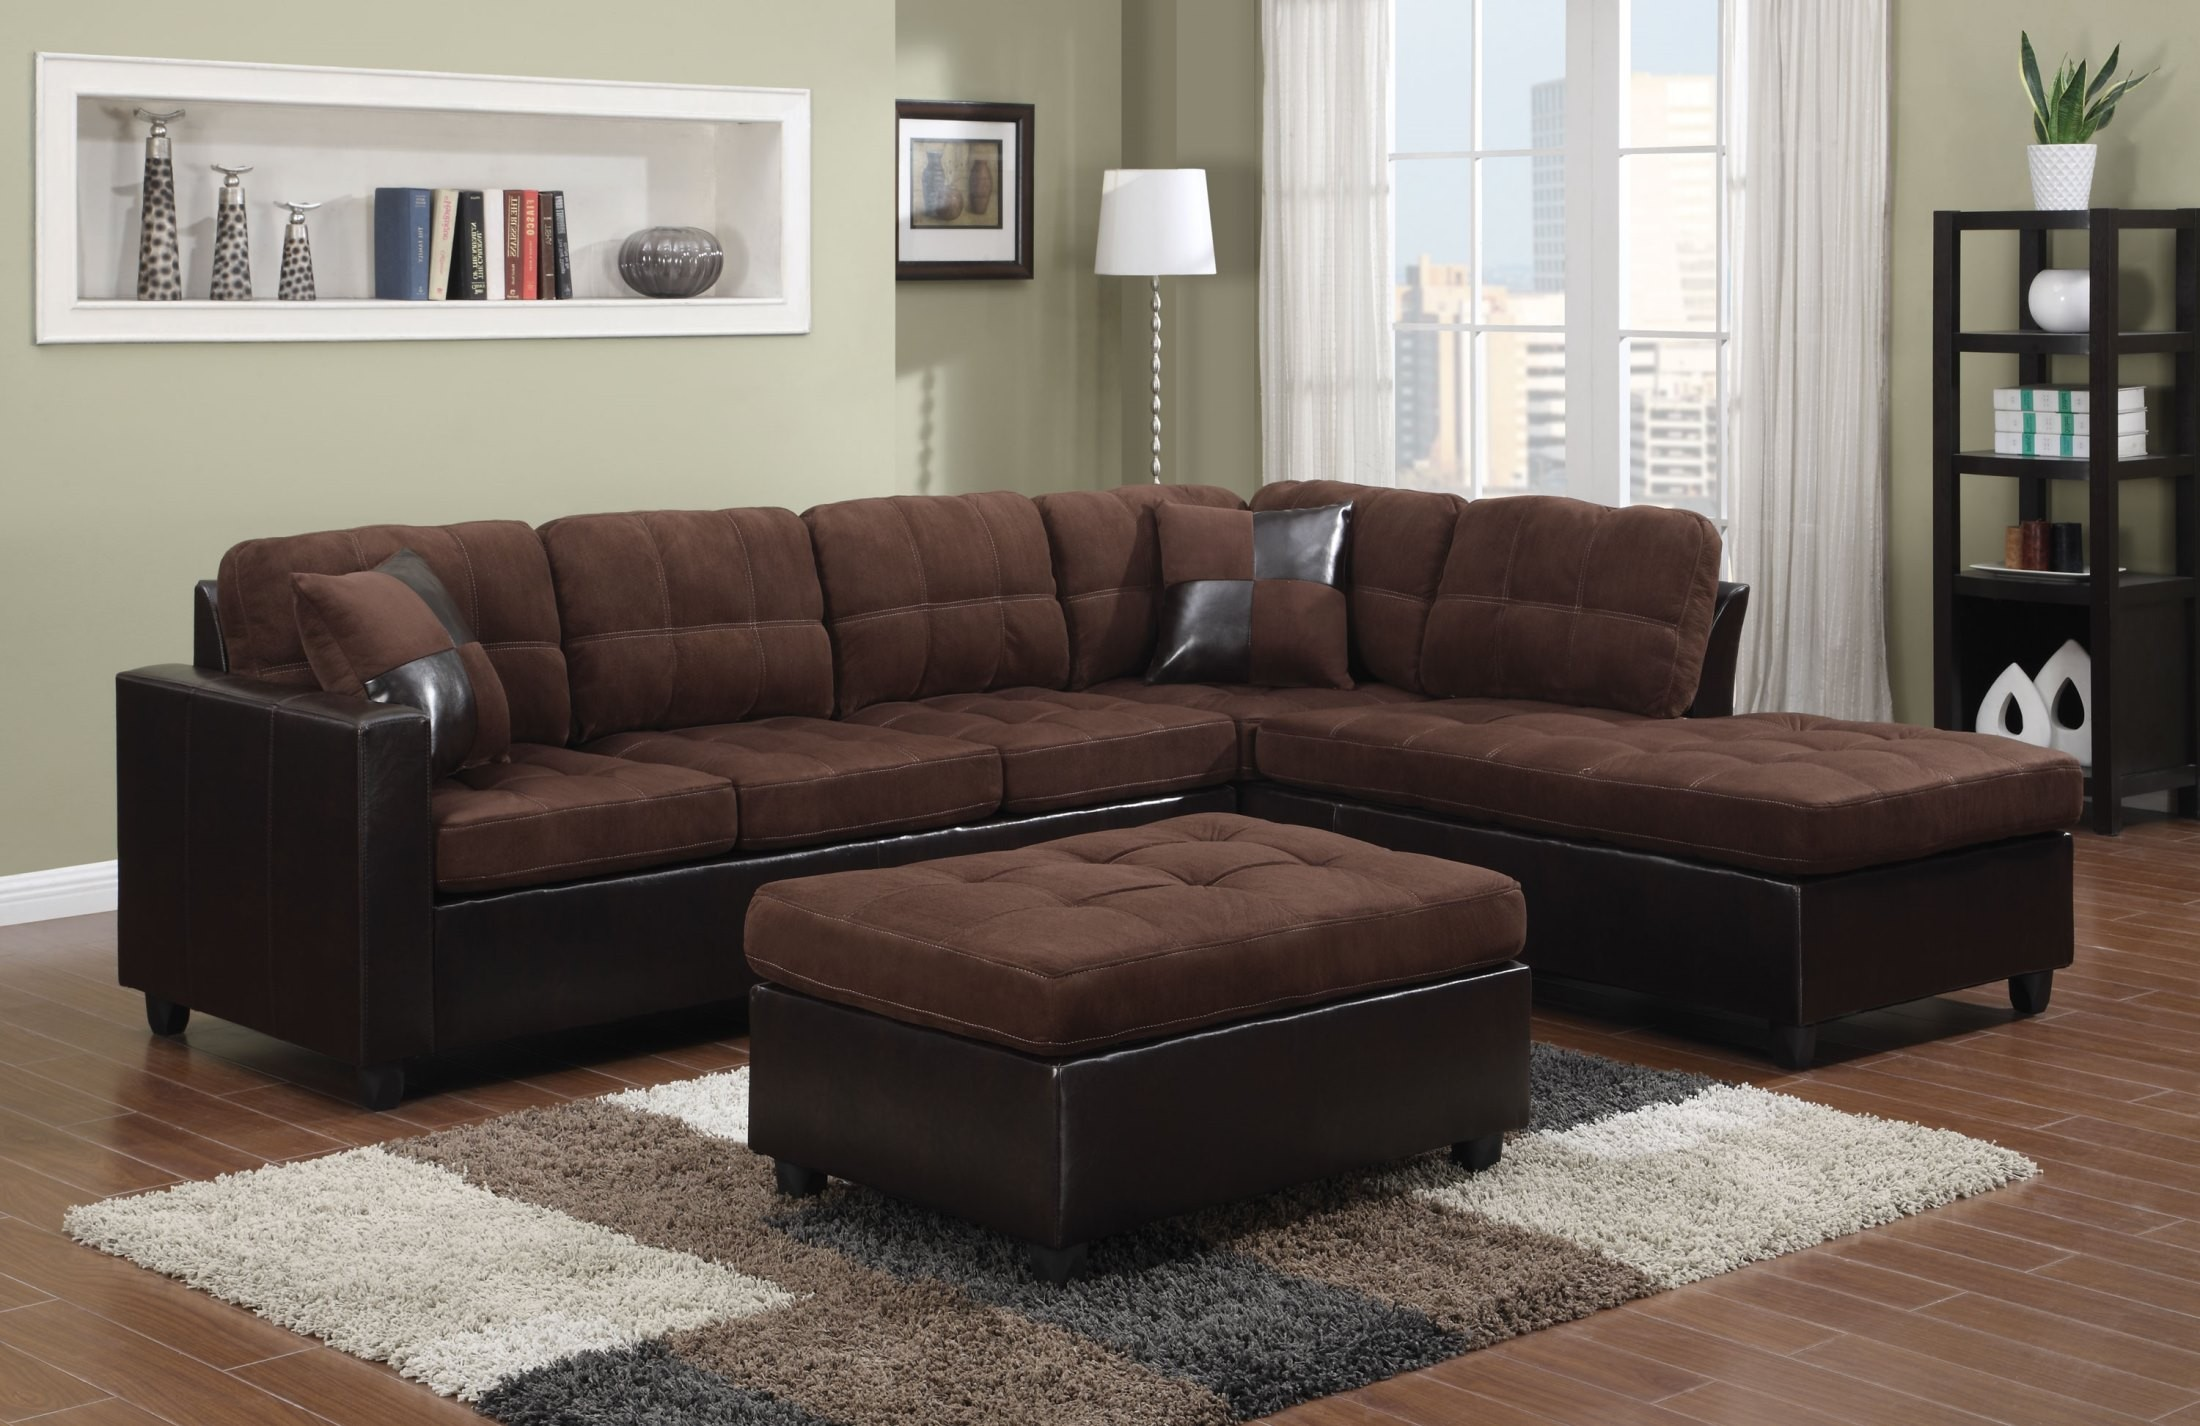 Mallory chocolate sectional from coaster 505655 for Affordable furniture 3 piece sectional in jesse cocoa